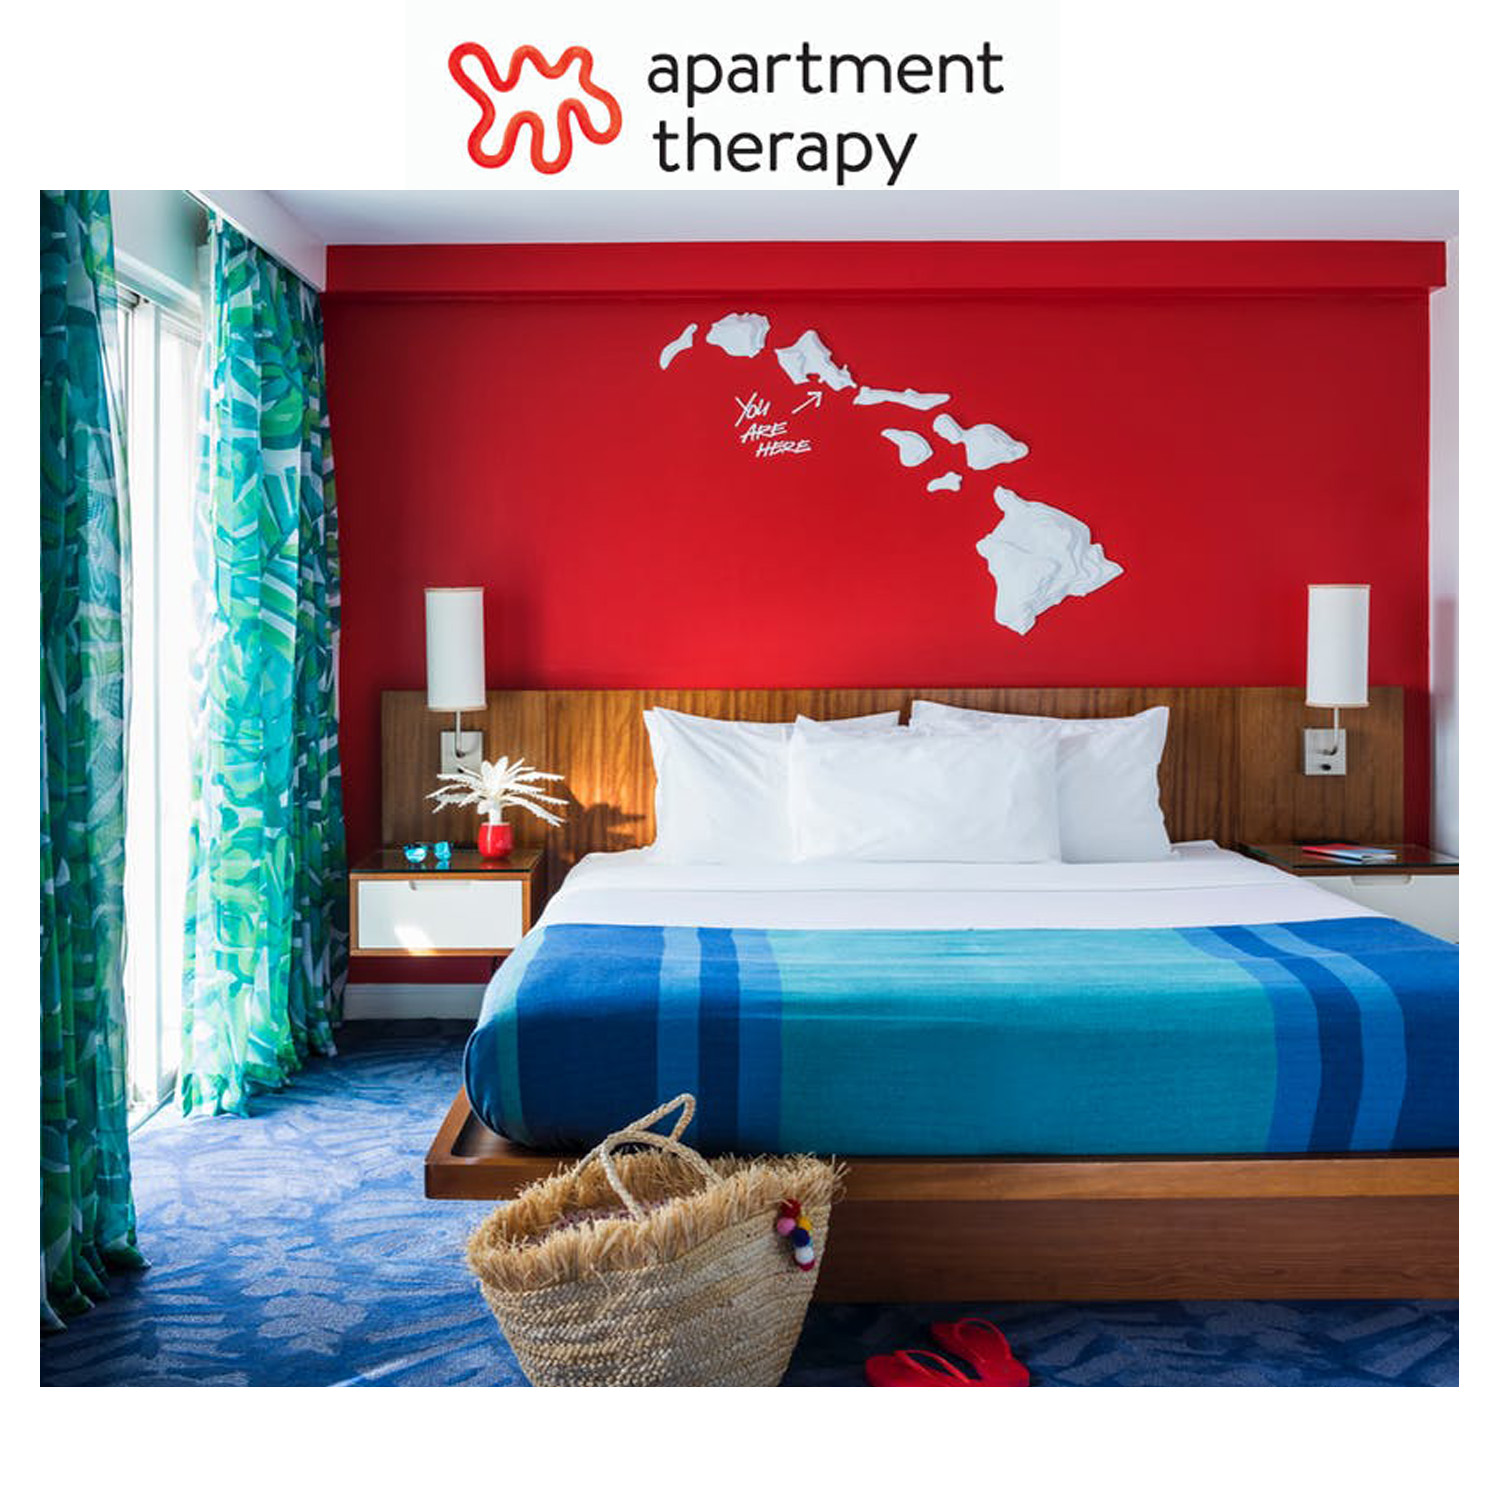 Apartment Therapy - August 2018Inside Hawaii's Most Colorful New Hotel